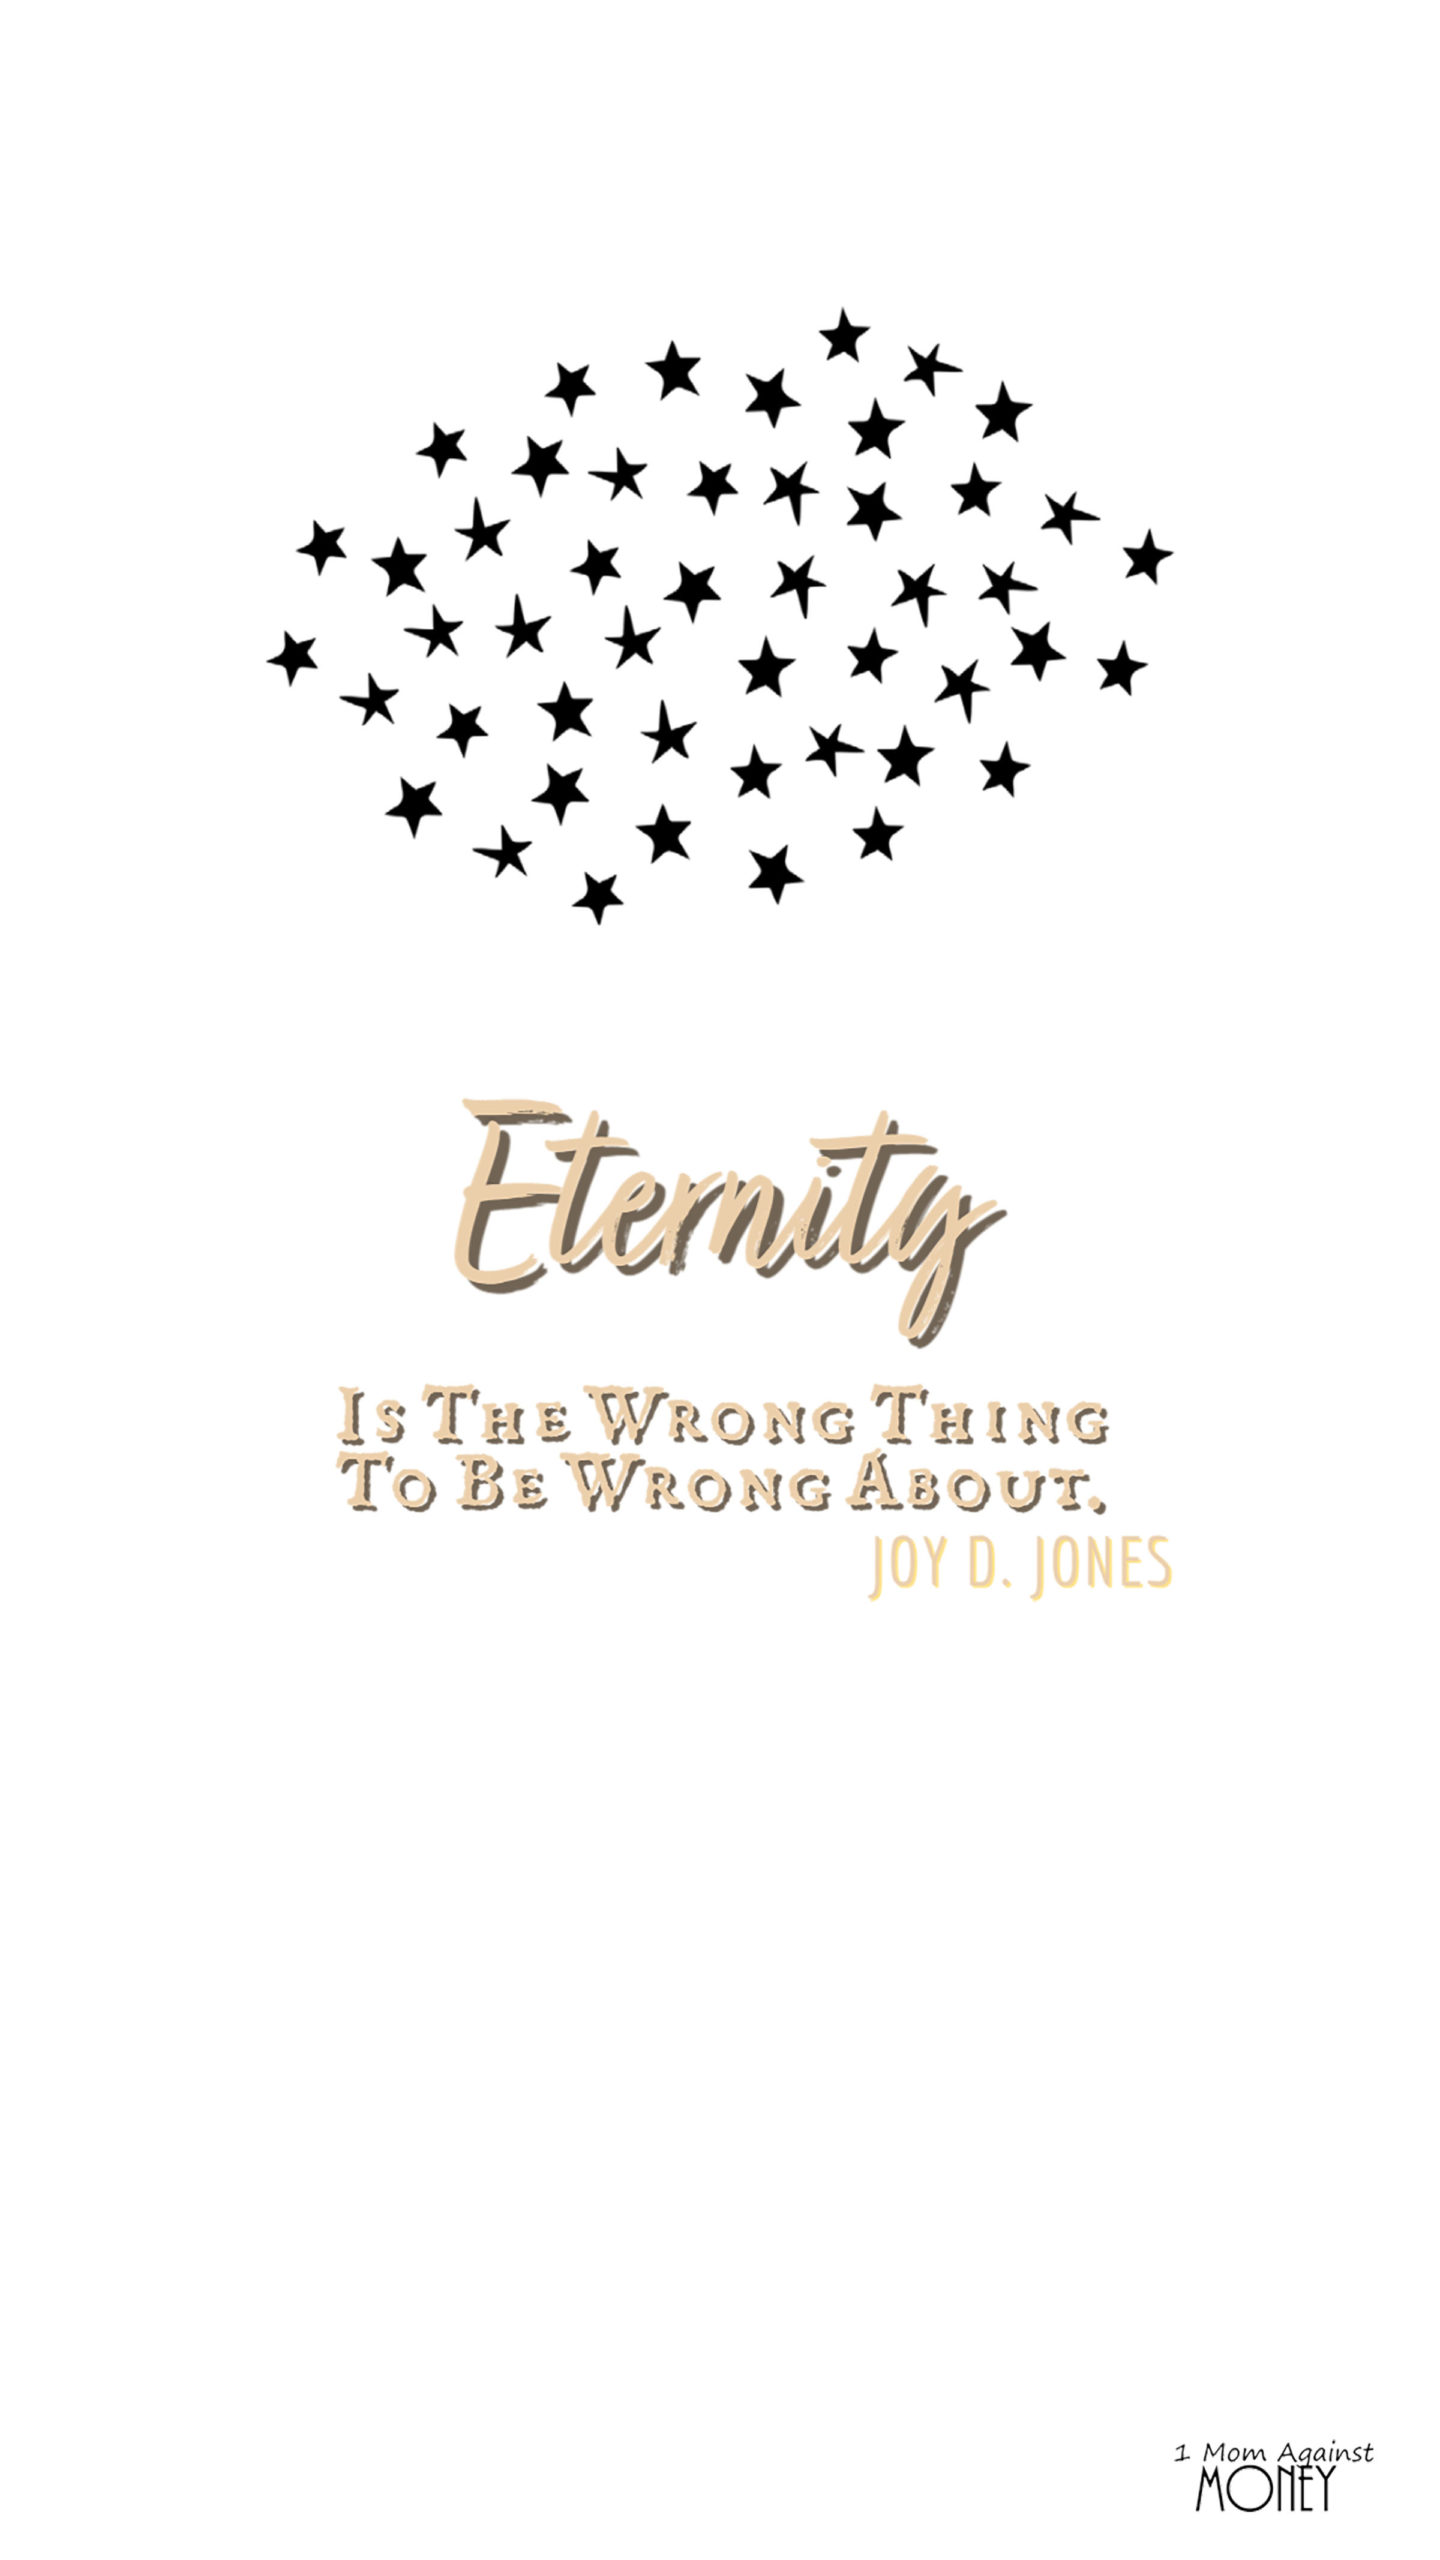 LDS General Conference Eternity April 2021